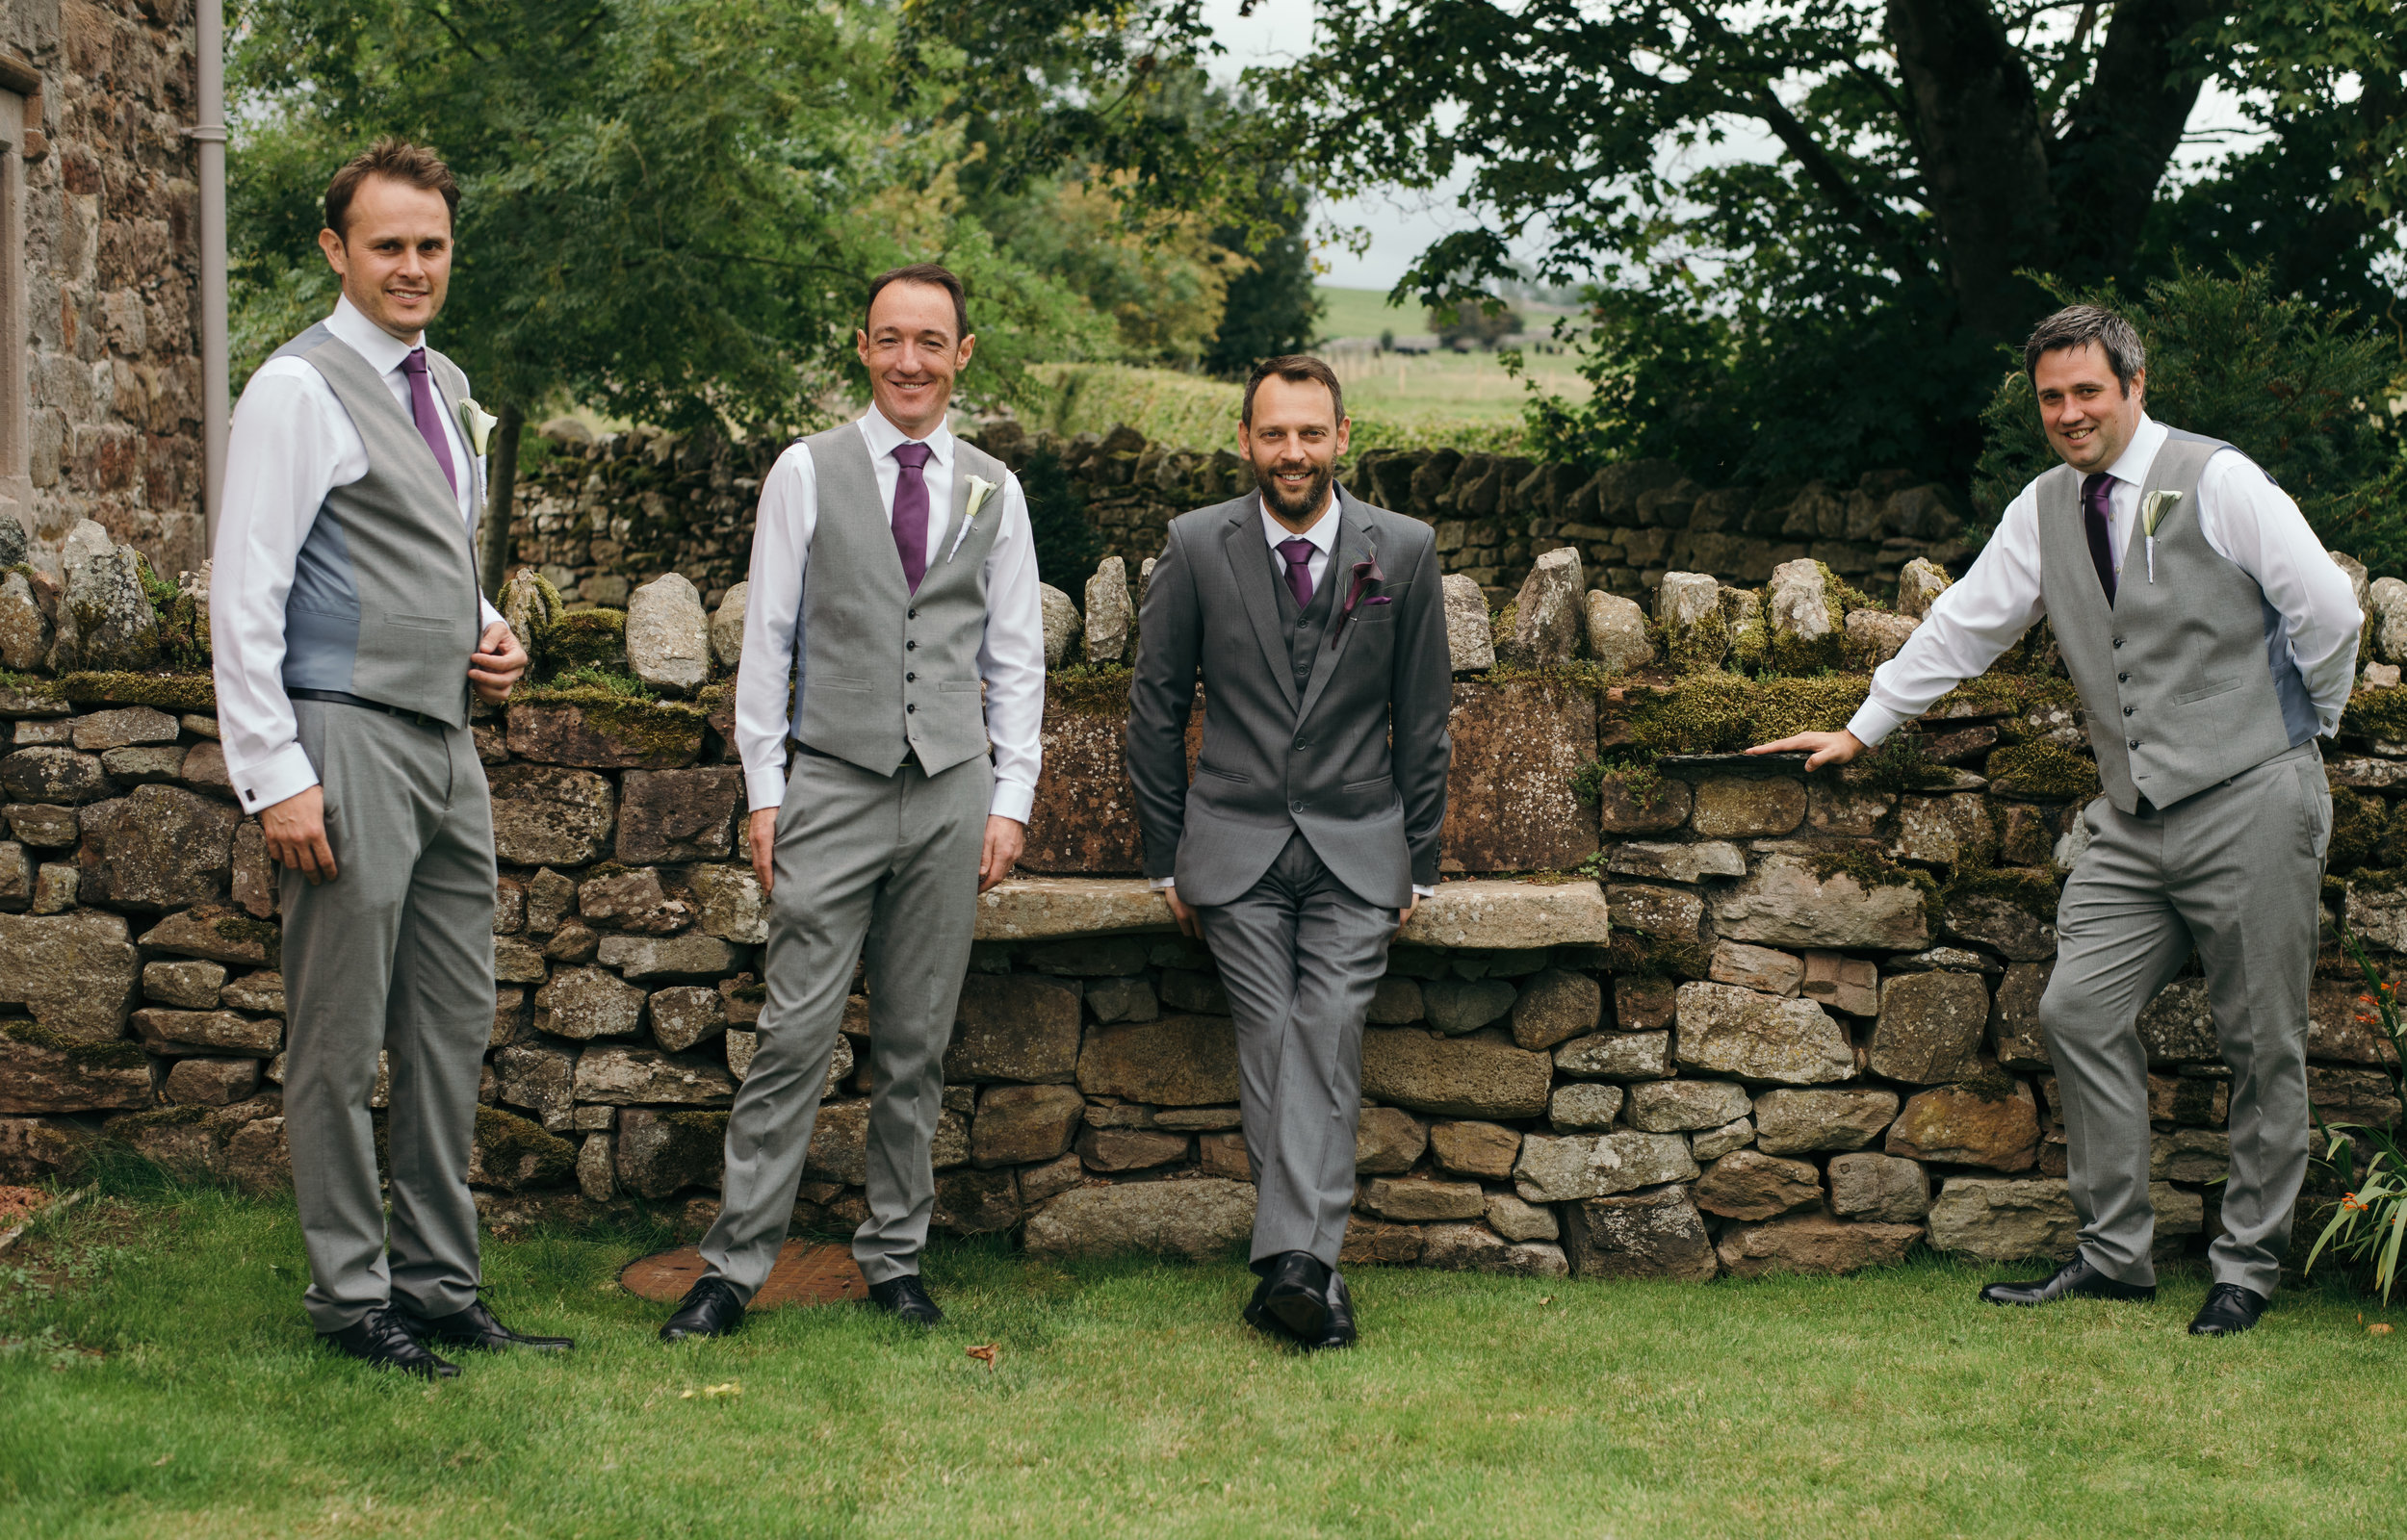 The groom and best men having a laugh before the ceremony